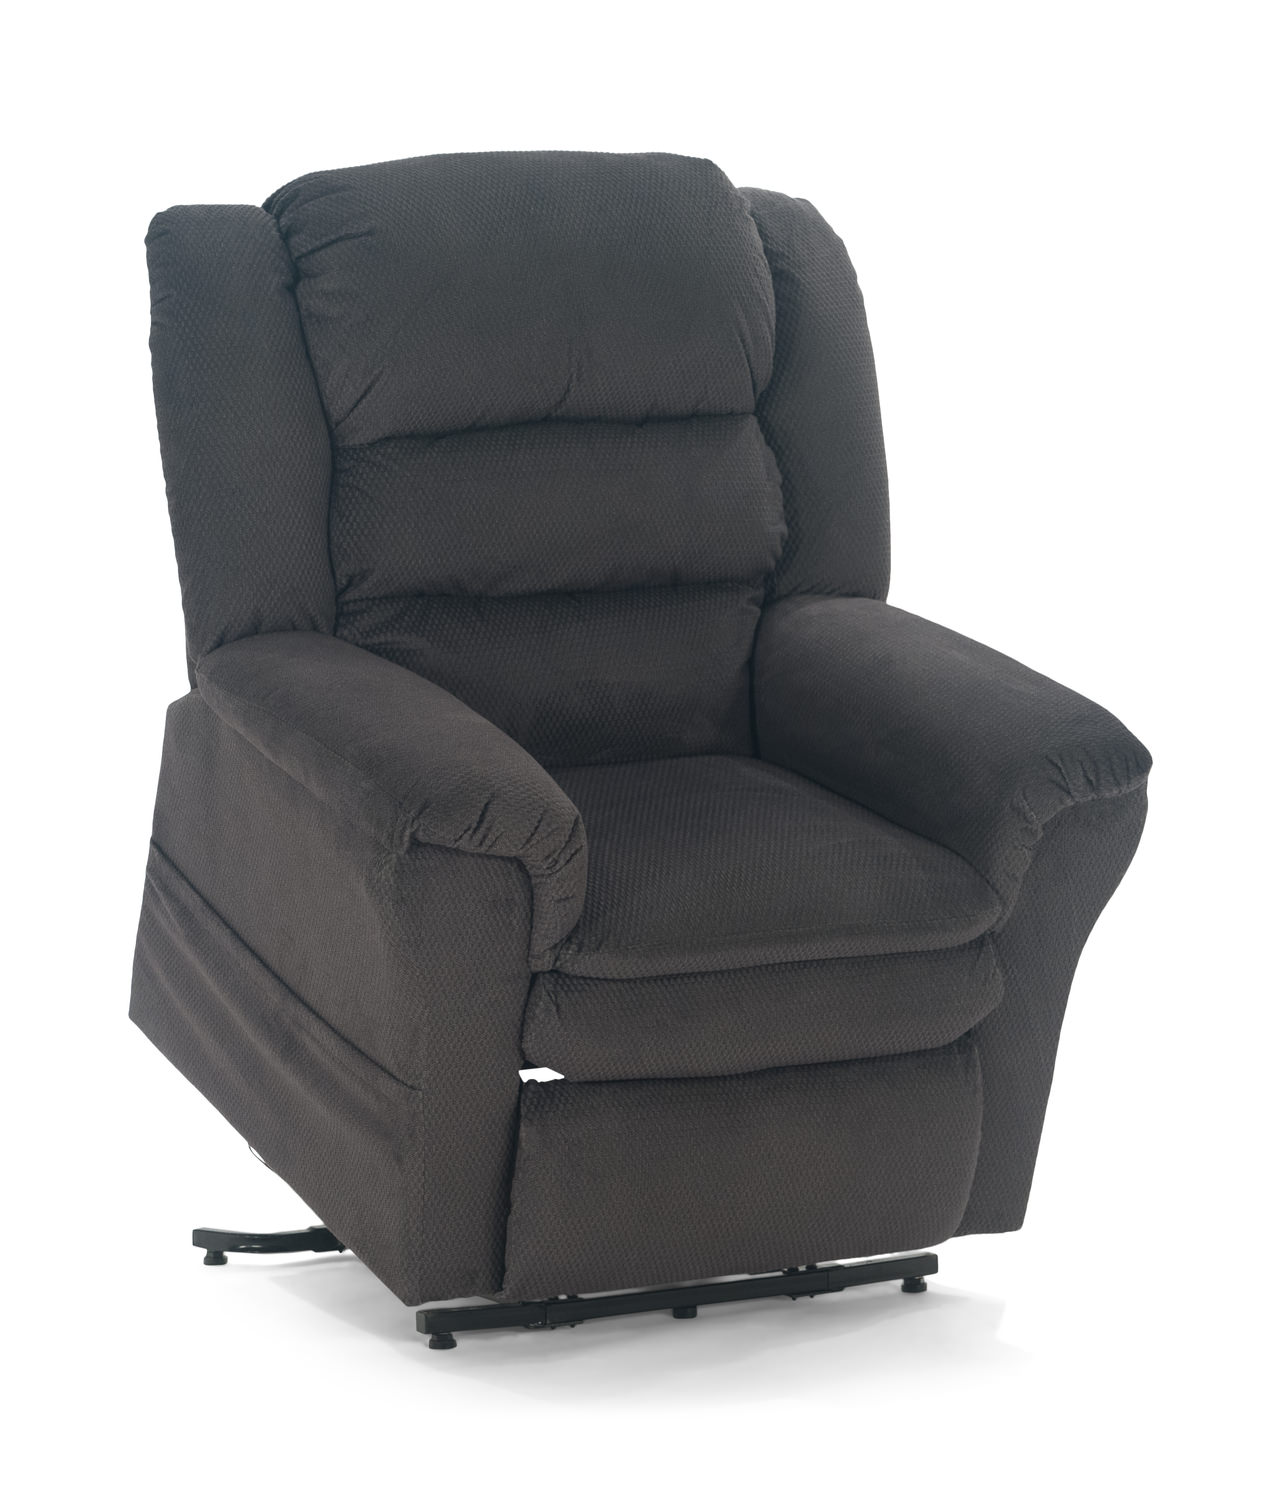 Kelly Power Lift Chair Recliner - Smoke